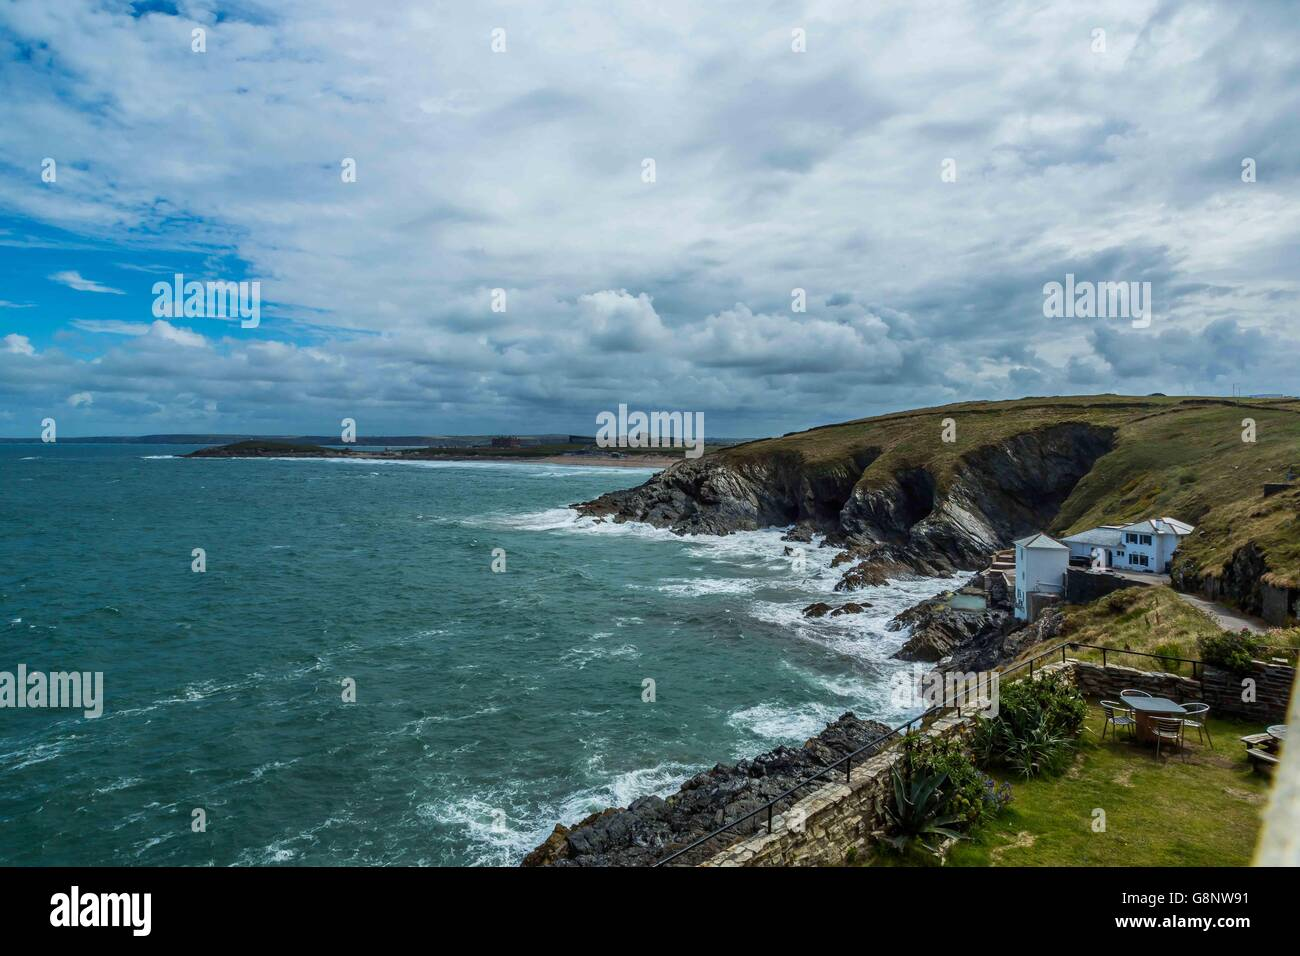 West Pentire waves and the blue sea ocean off the Cornish coast UK - Stock Image